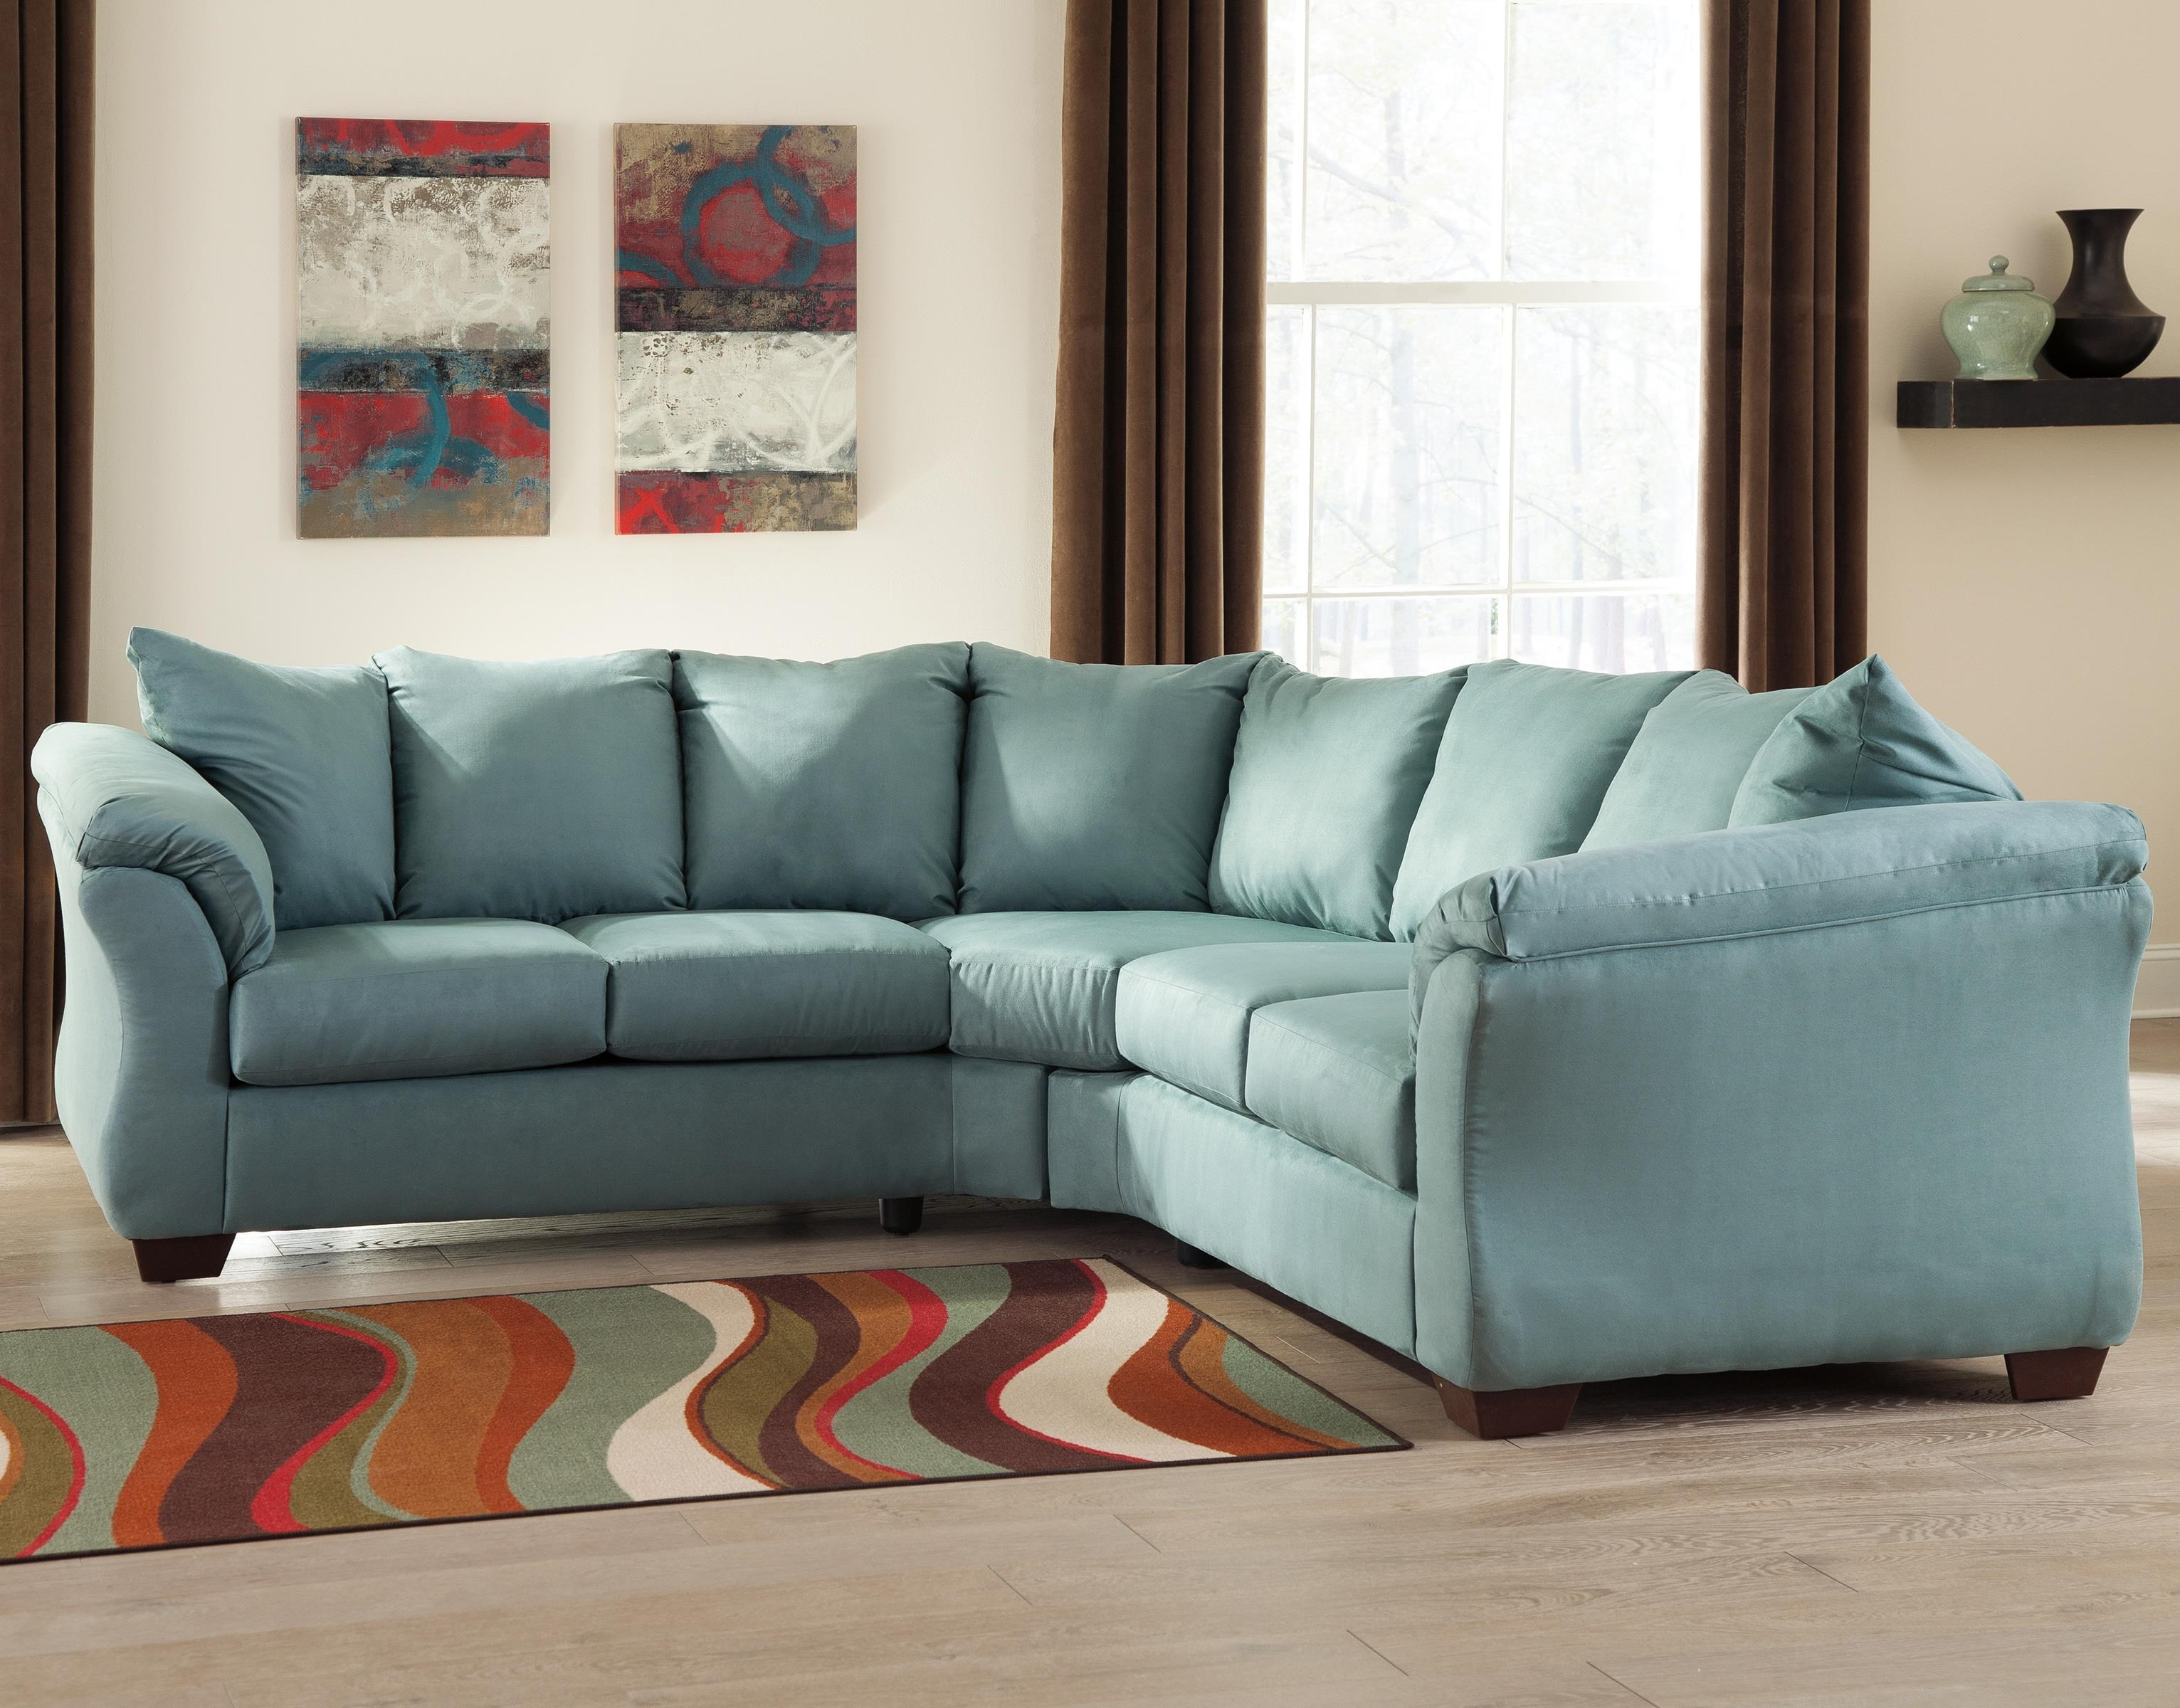 Signature Design By Ashley Darcy   Sky Contemporary Sectional Sofa With  Sweeping Pillow Arms